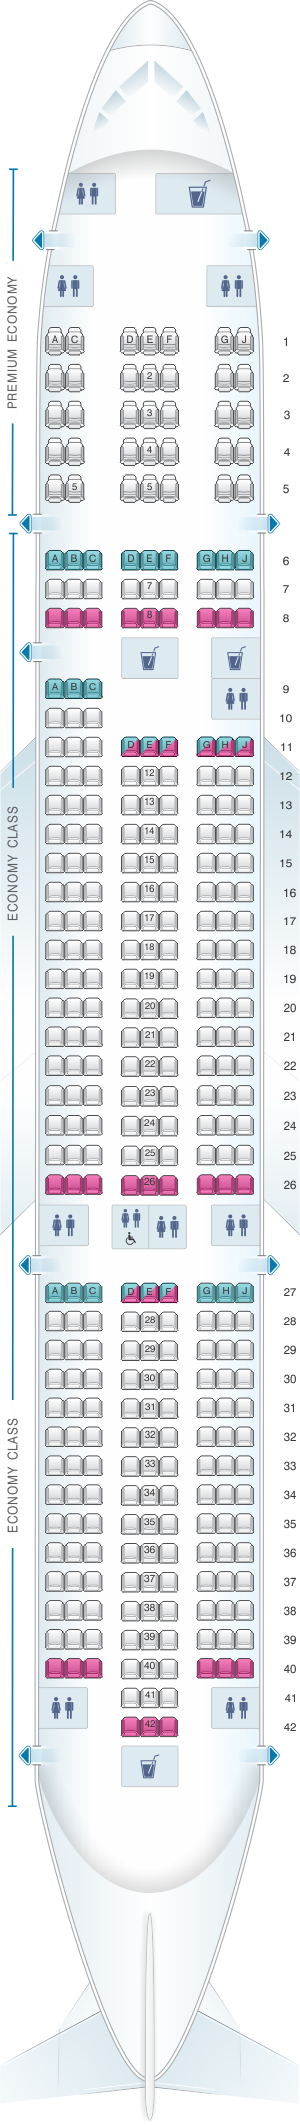 Seat map for Norwegian Boeing B787 9